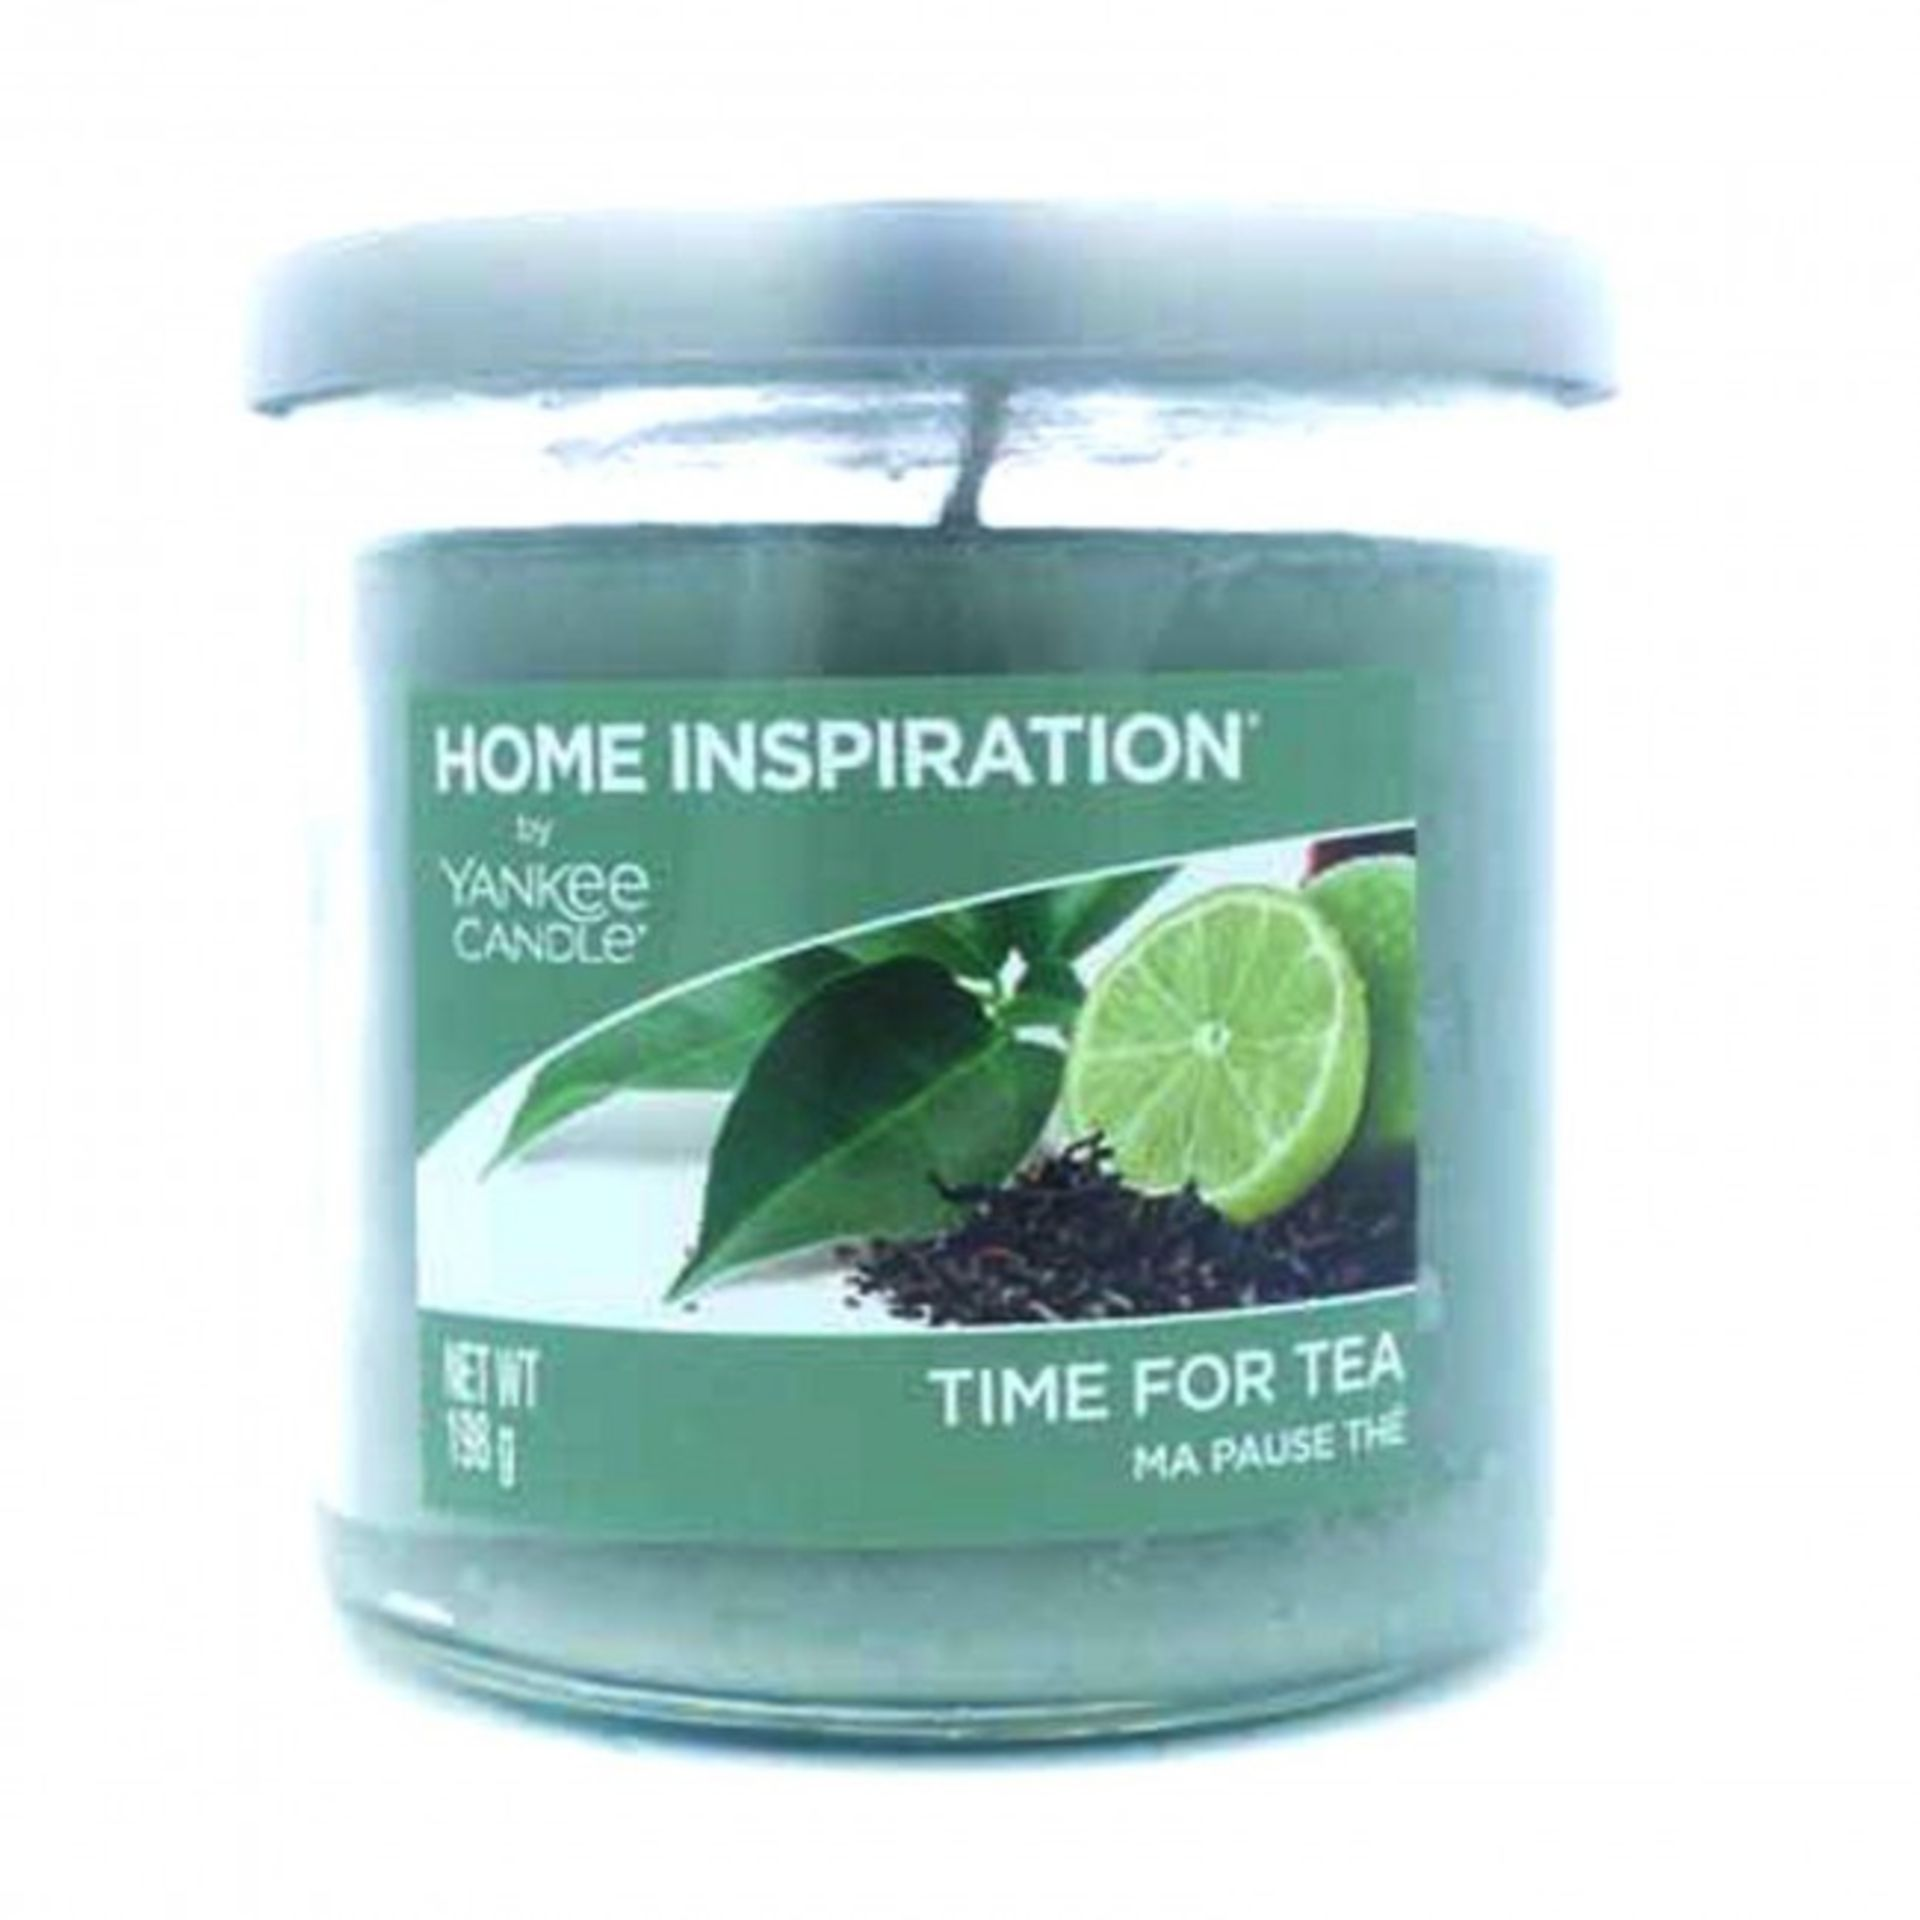 Lot 50088 - V Brand New Home Inspiration by Yankee Candle Time for Tea 198g Tumbler Candle - ISP £7.99 Ebay (